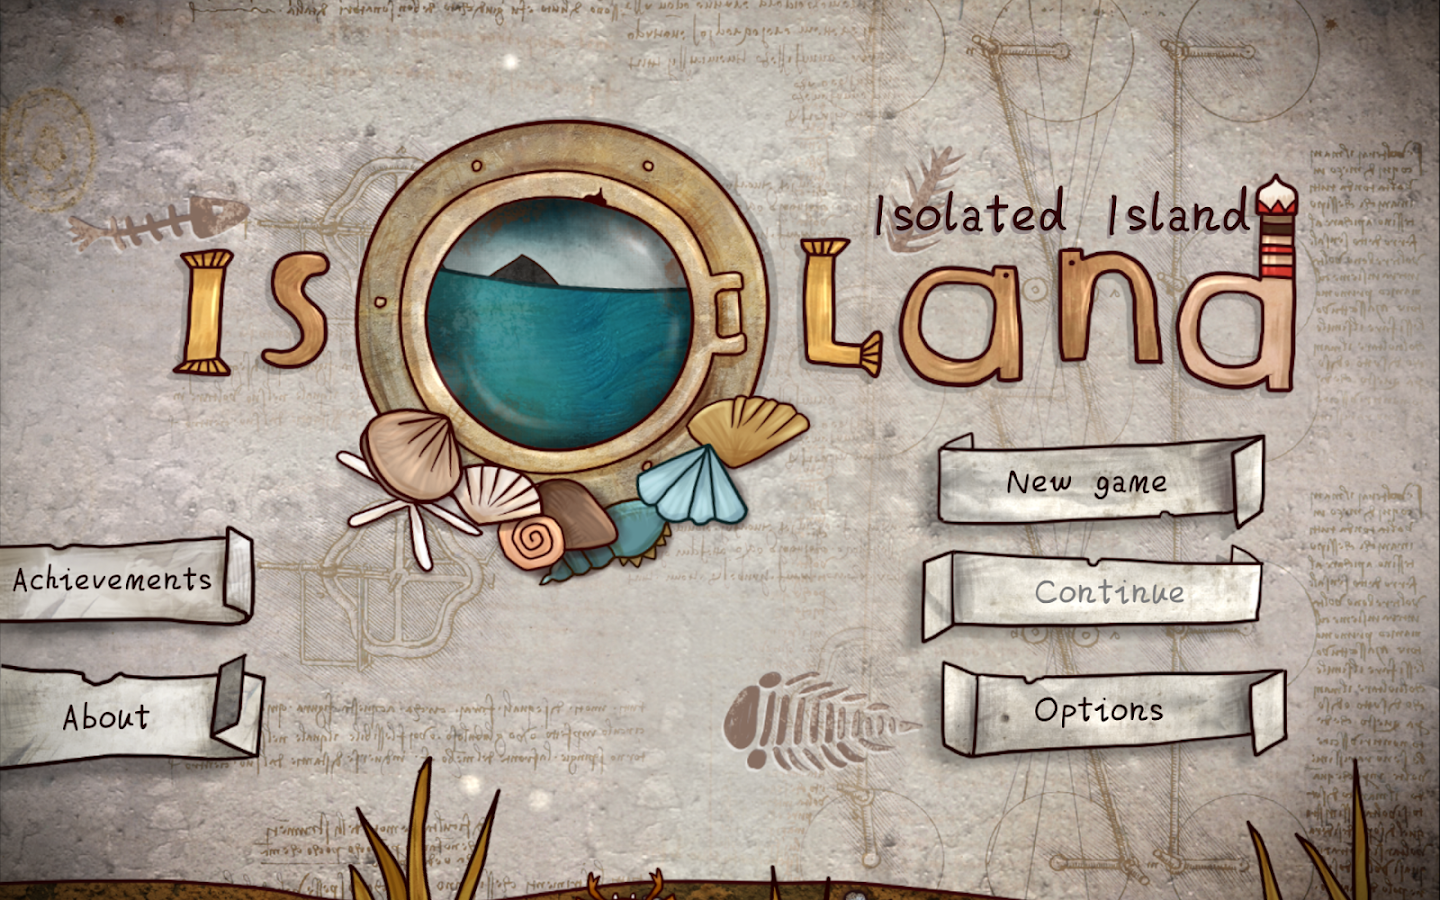 Isoland Screenshot 8